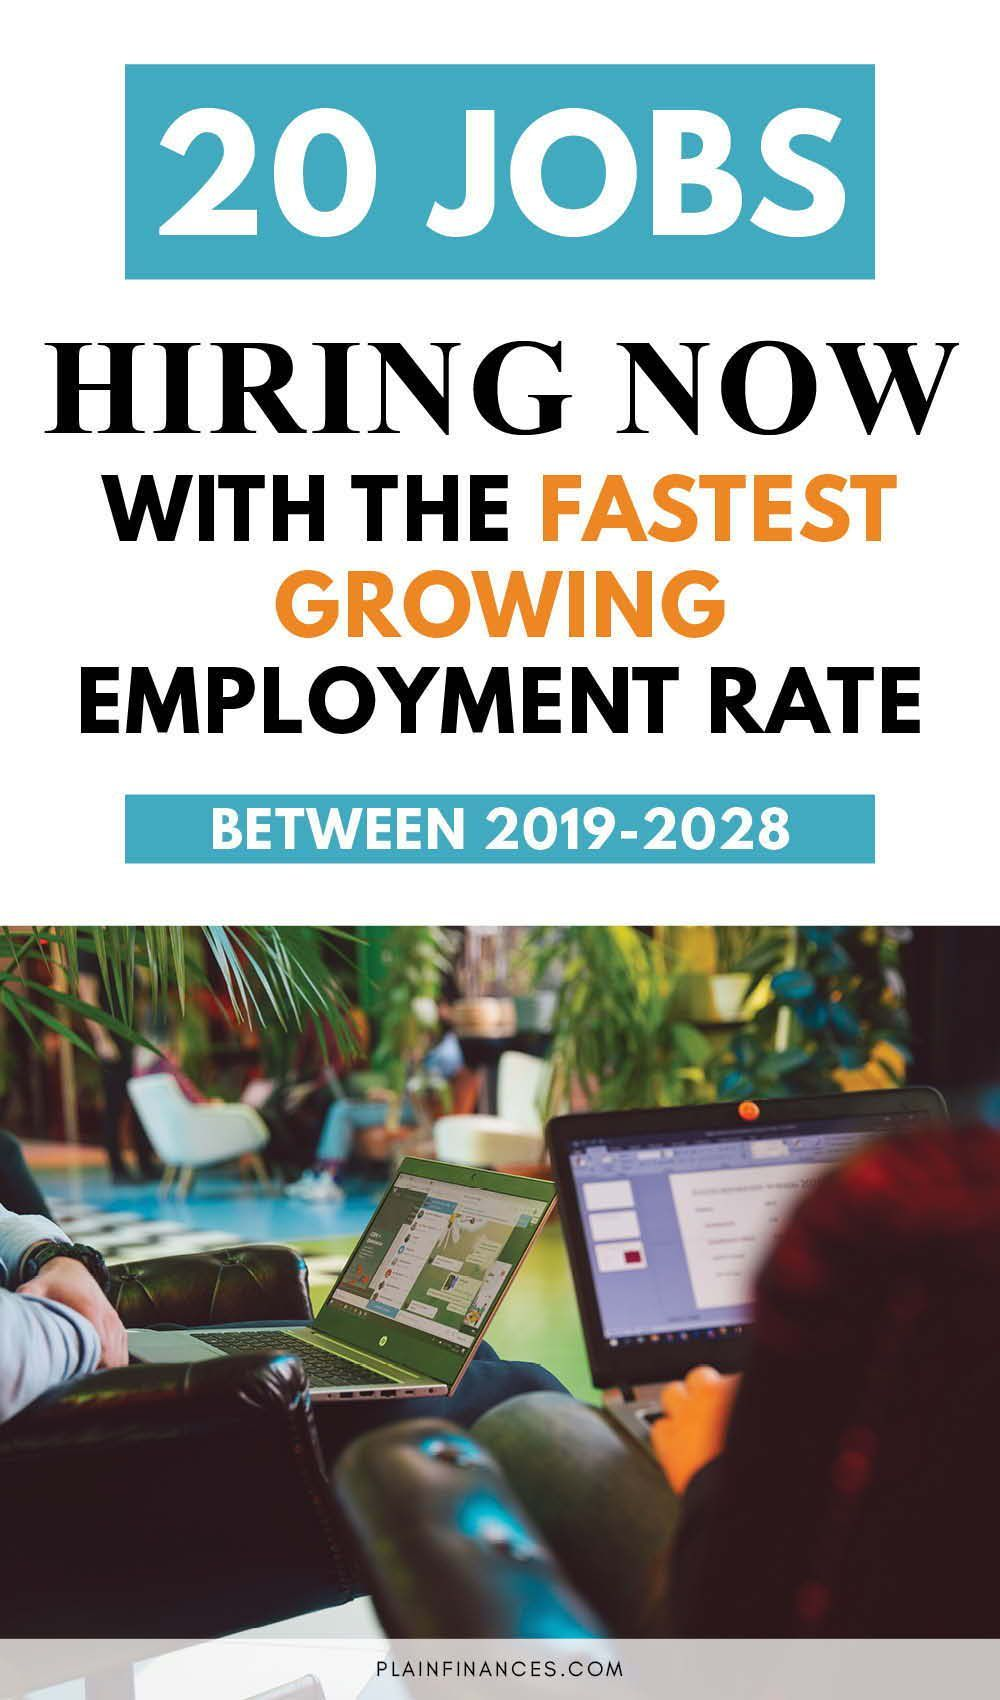 20 Jobs Hiring Now With the Fastest Growing Employment